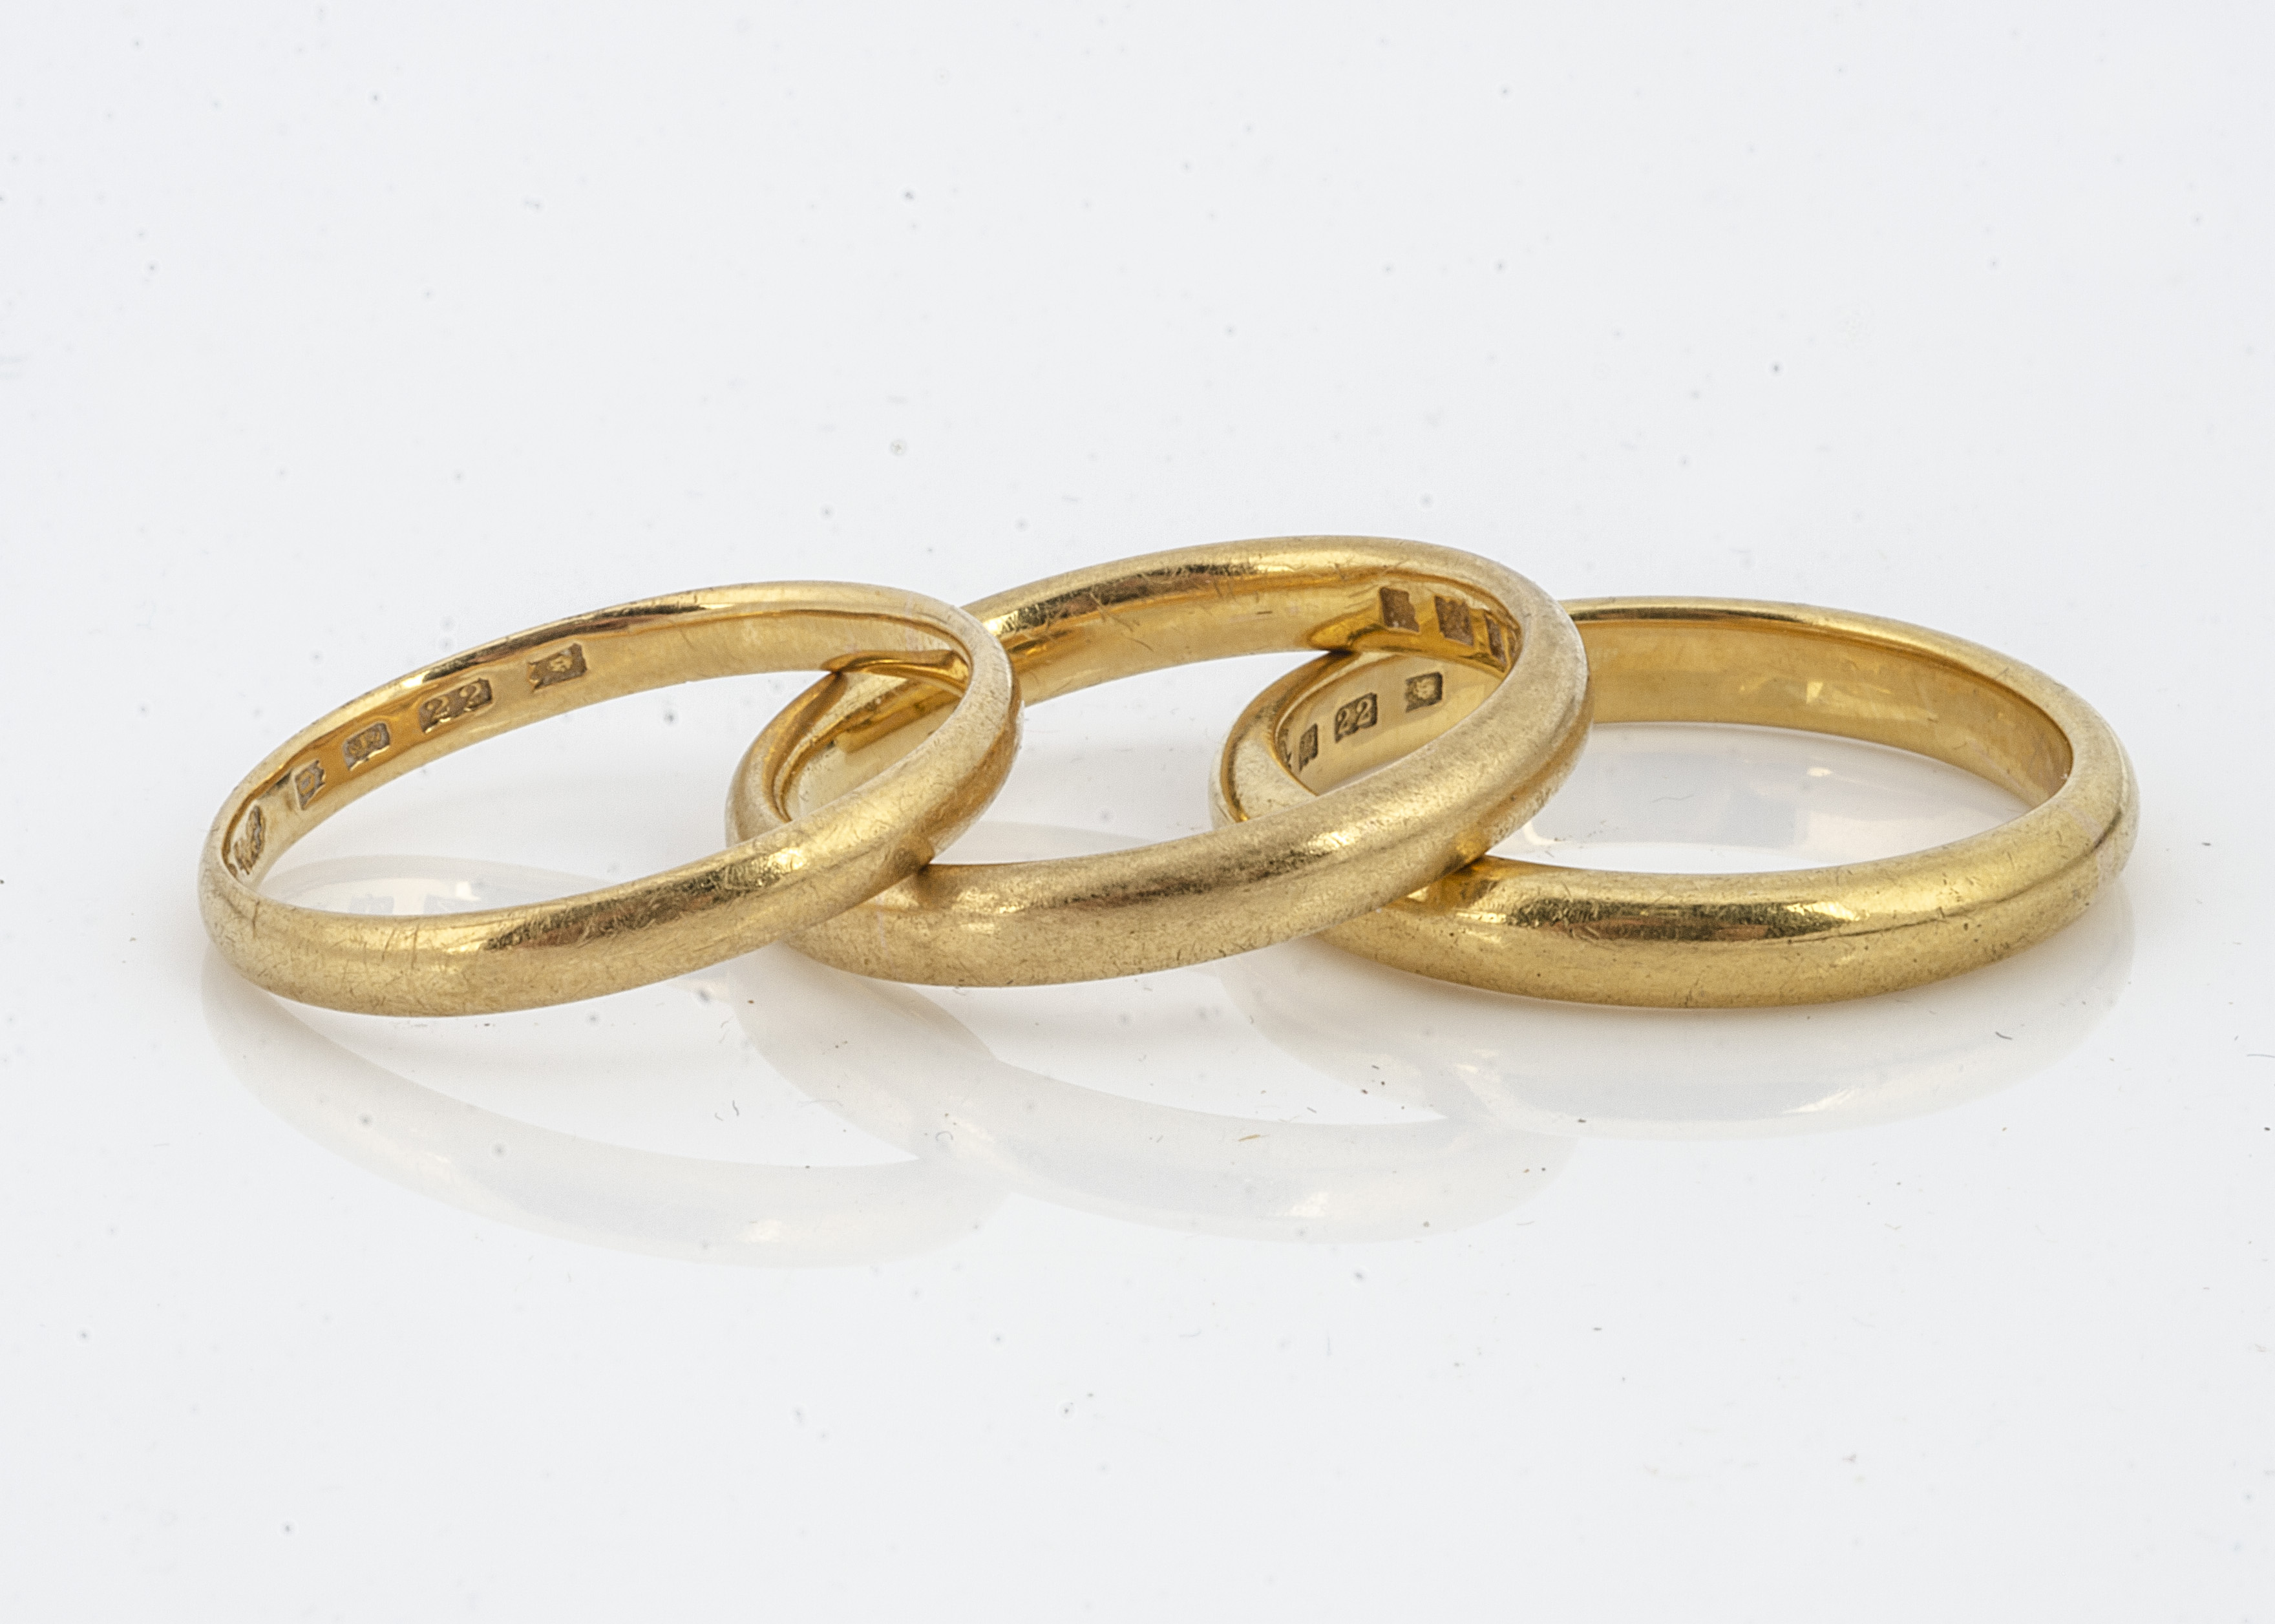 Three 22ct gold D shaped wedding bands, one size S, 2 x size P, 13.7g